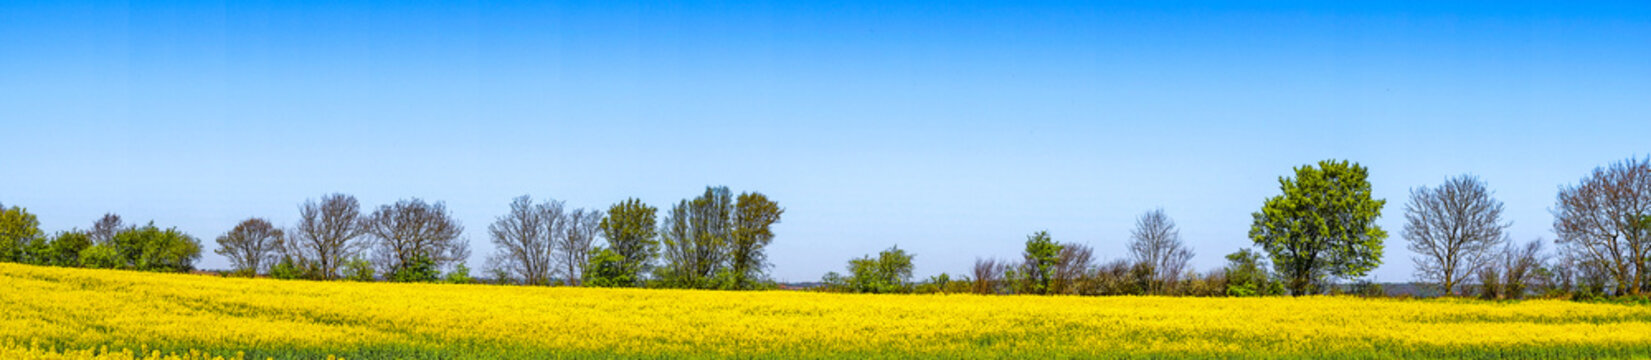 Rapeseed field in blue sky in panorama